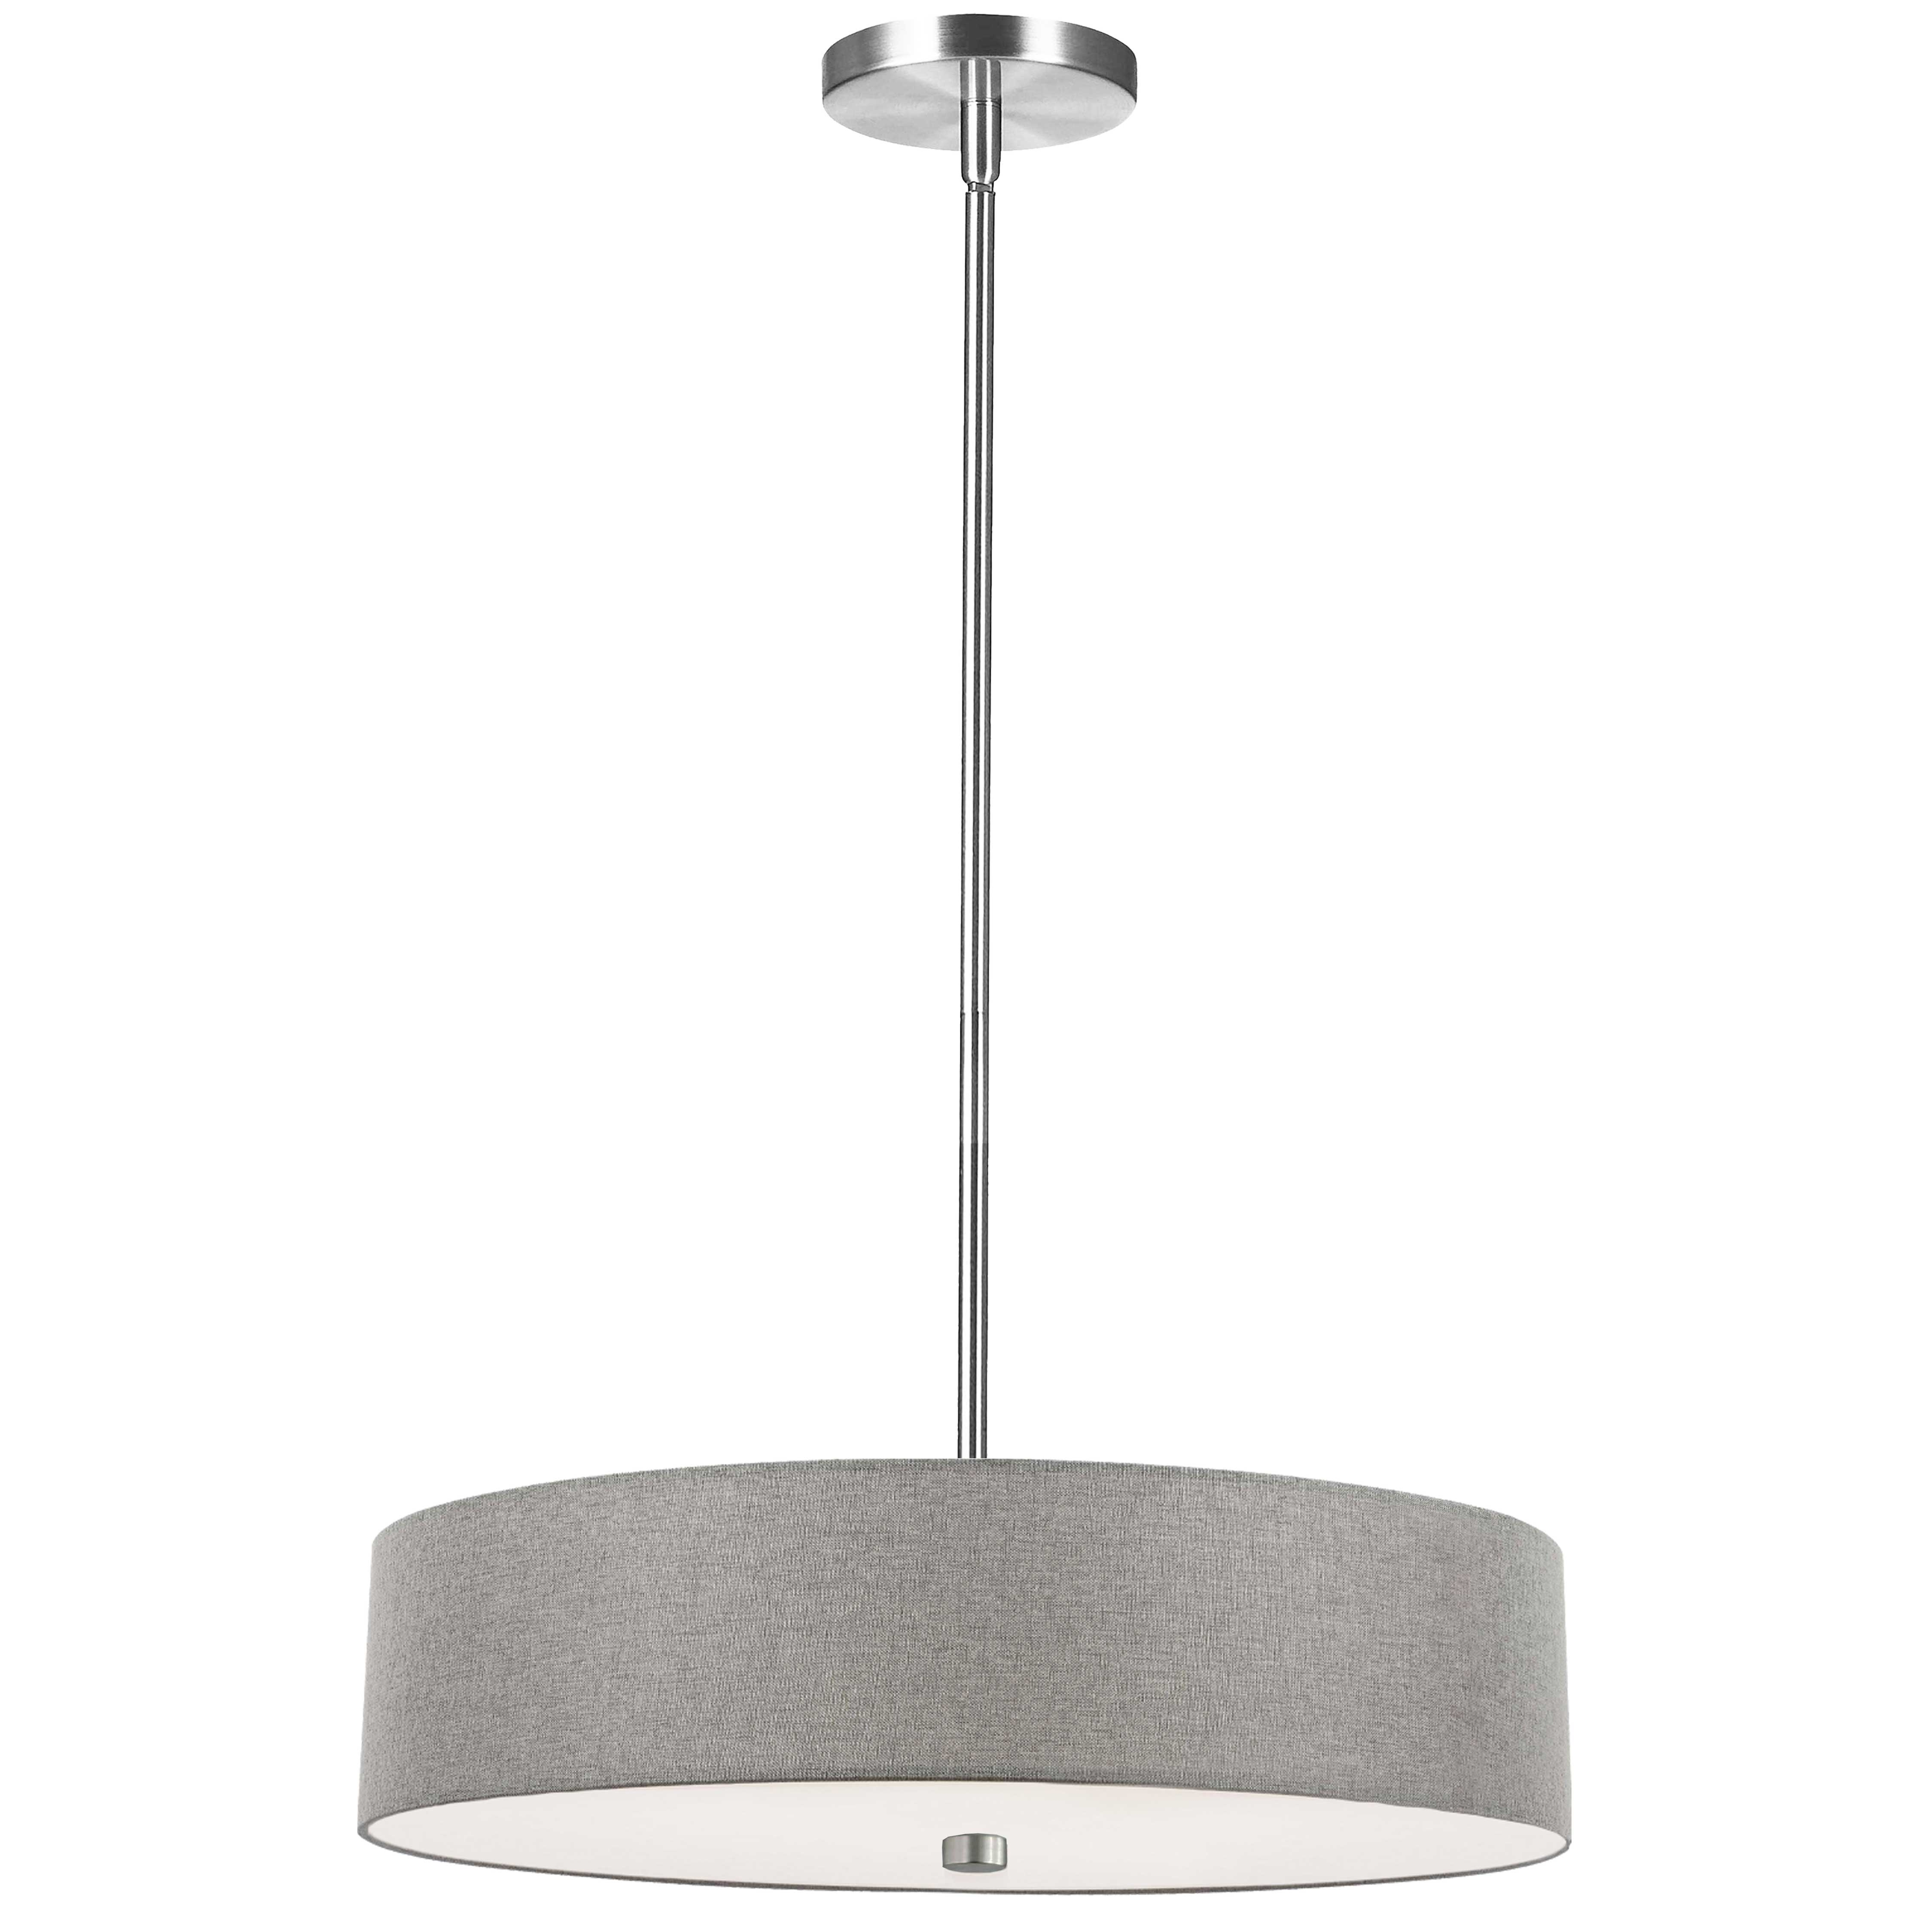 4 Light Incandescent Pendant Polished Chrome with Grey Shade